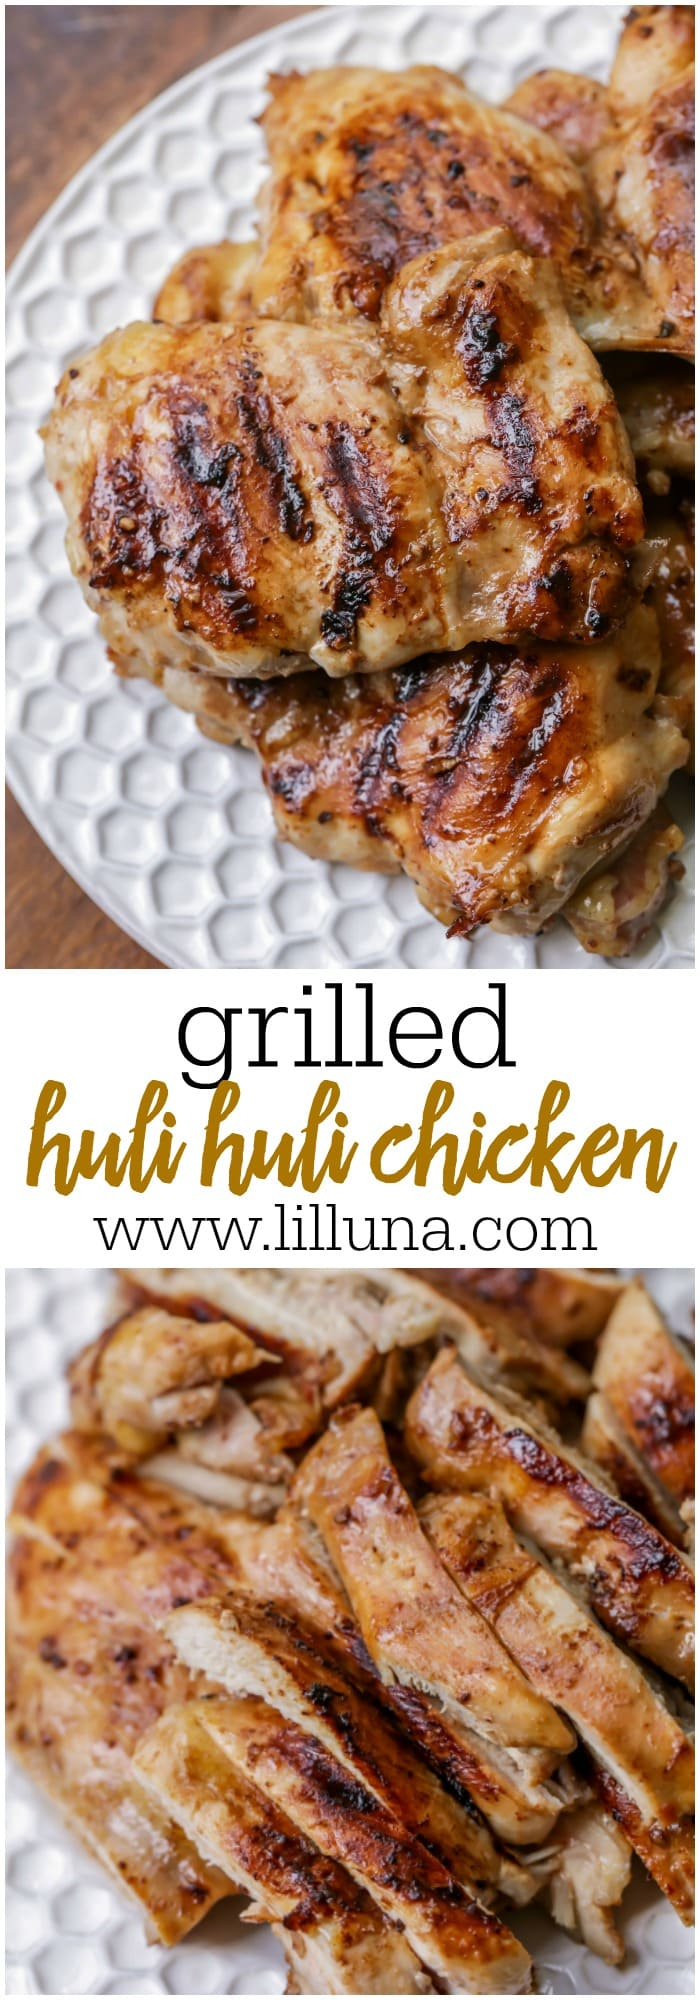 Grilled Huli Huli Chicken - the juiciest and most delicious Hawaiian chicken you'll ever try! Great alone or served on rice or noodles!!